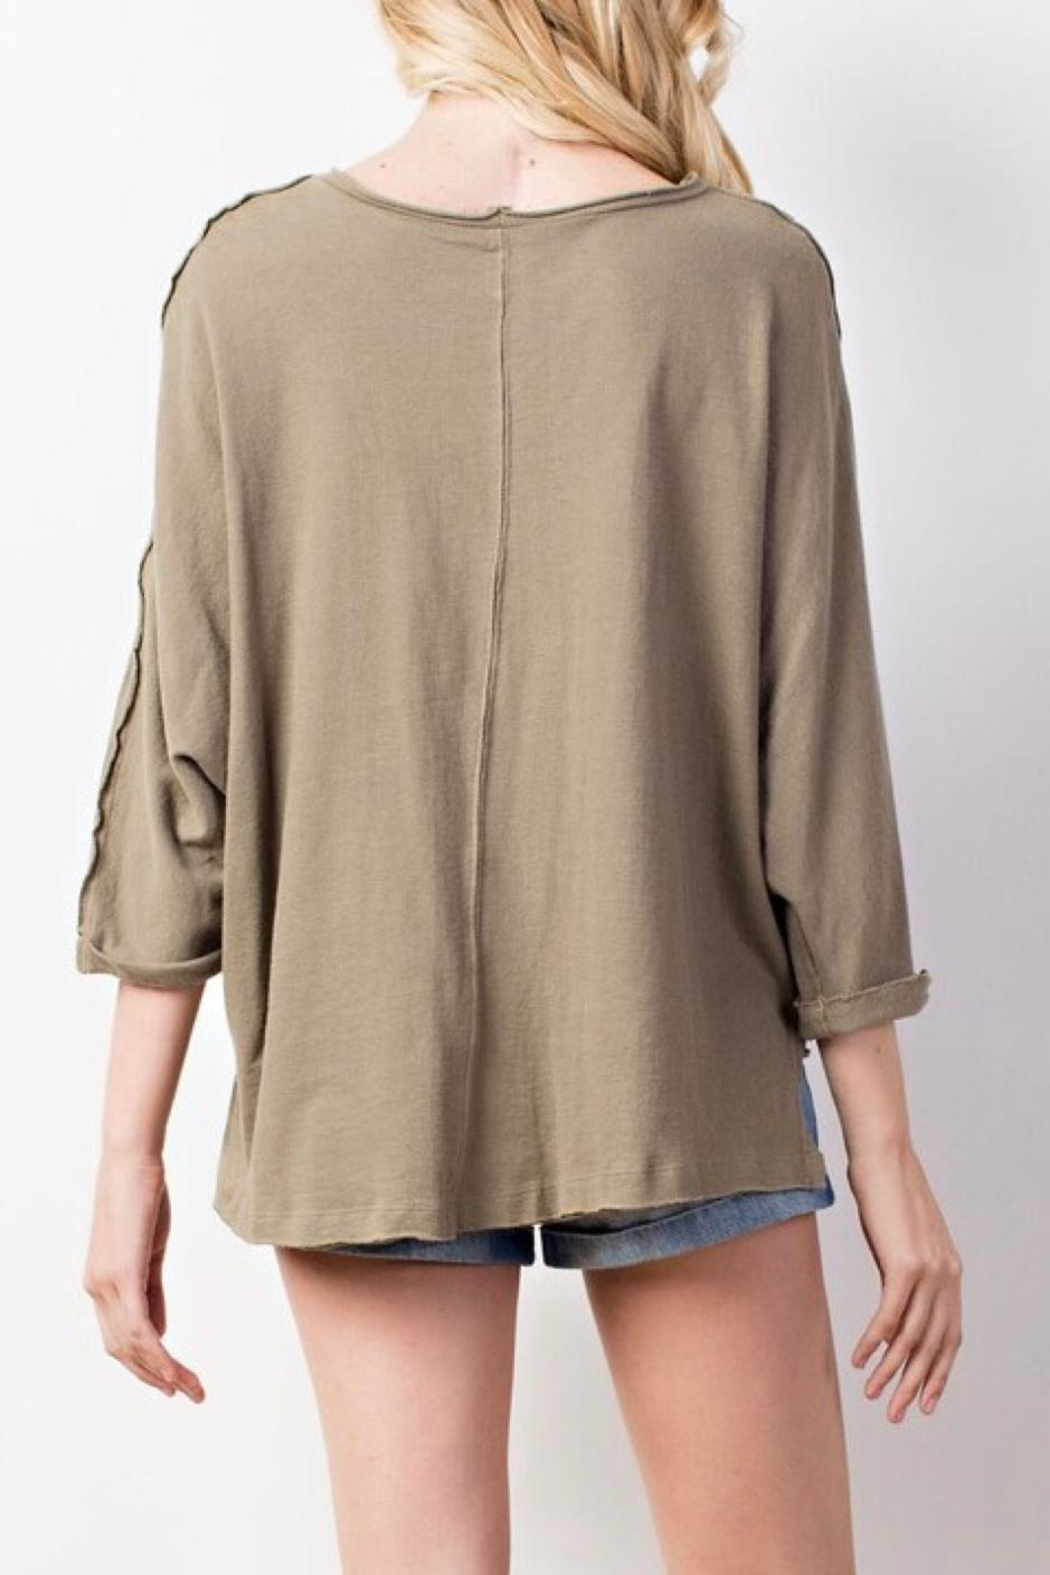 Mittoshop Braided Shoulder Top - Side Cropped Image